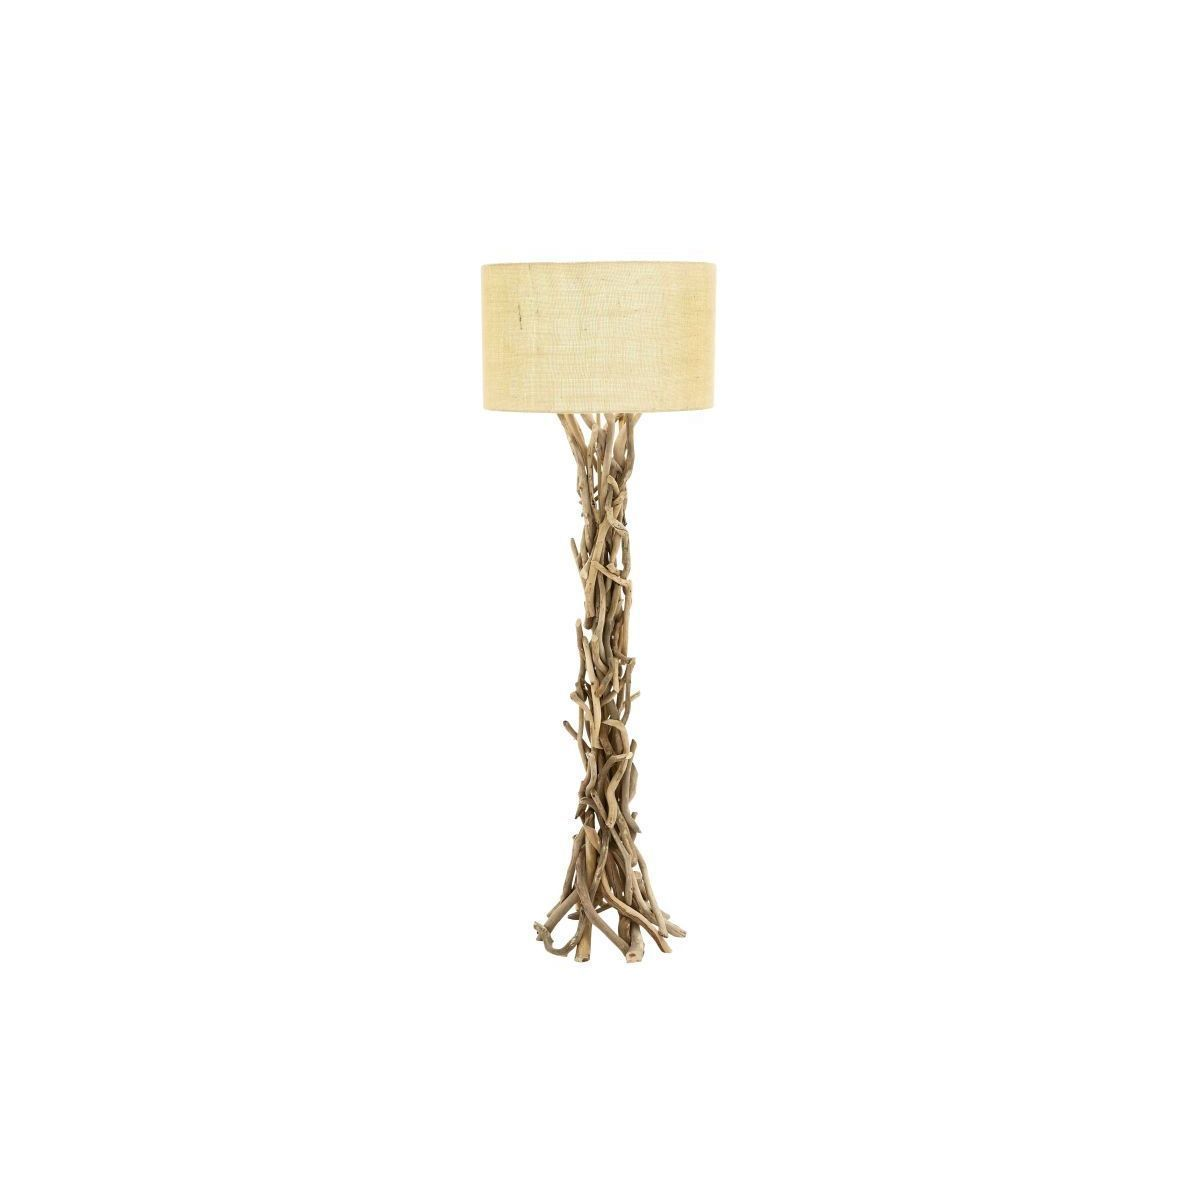 lamp floor garden product overstock home today driftwood free shipping